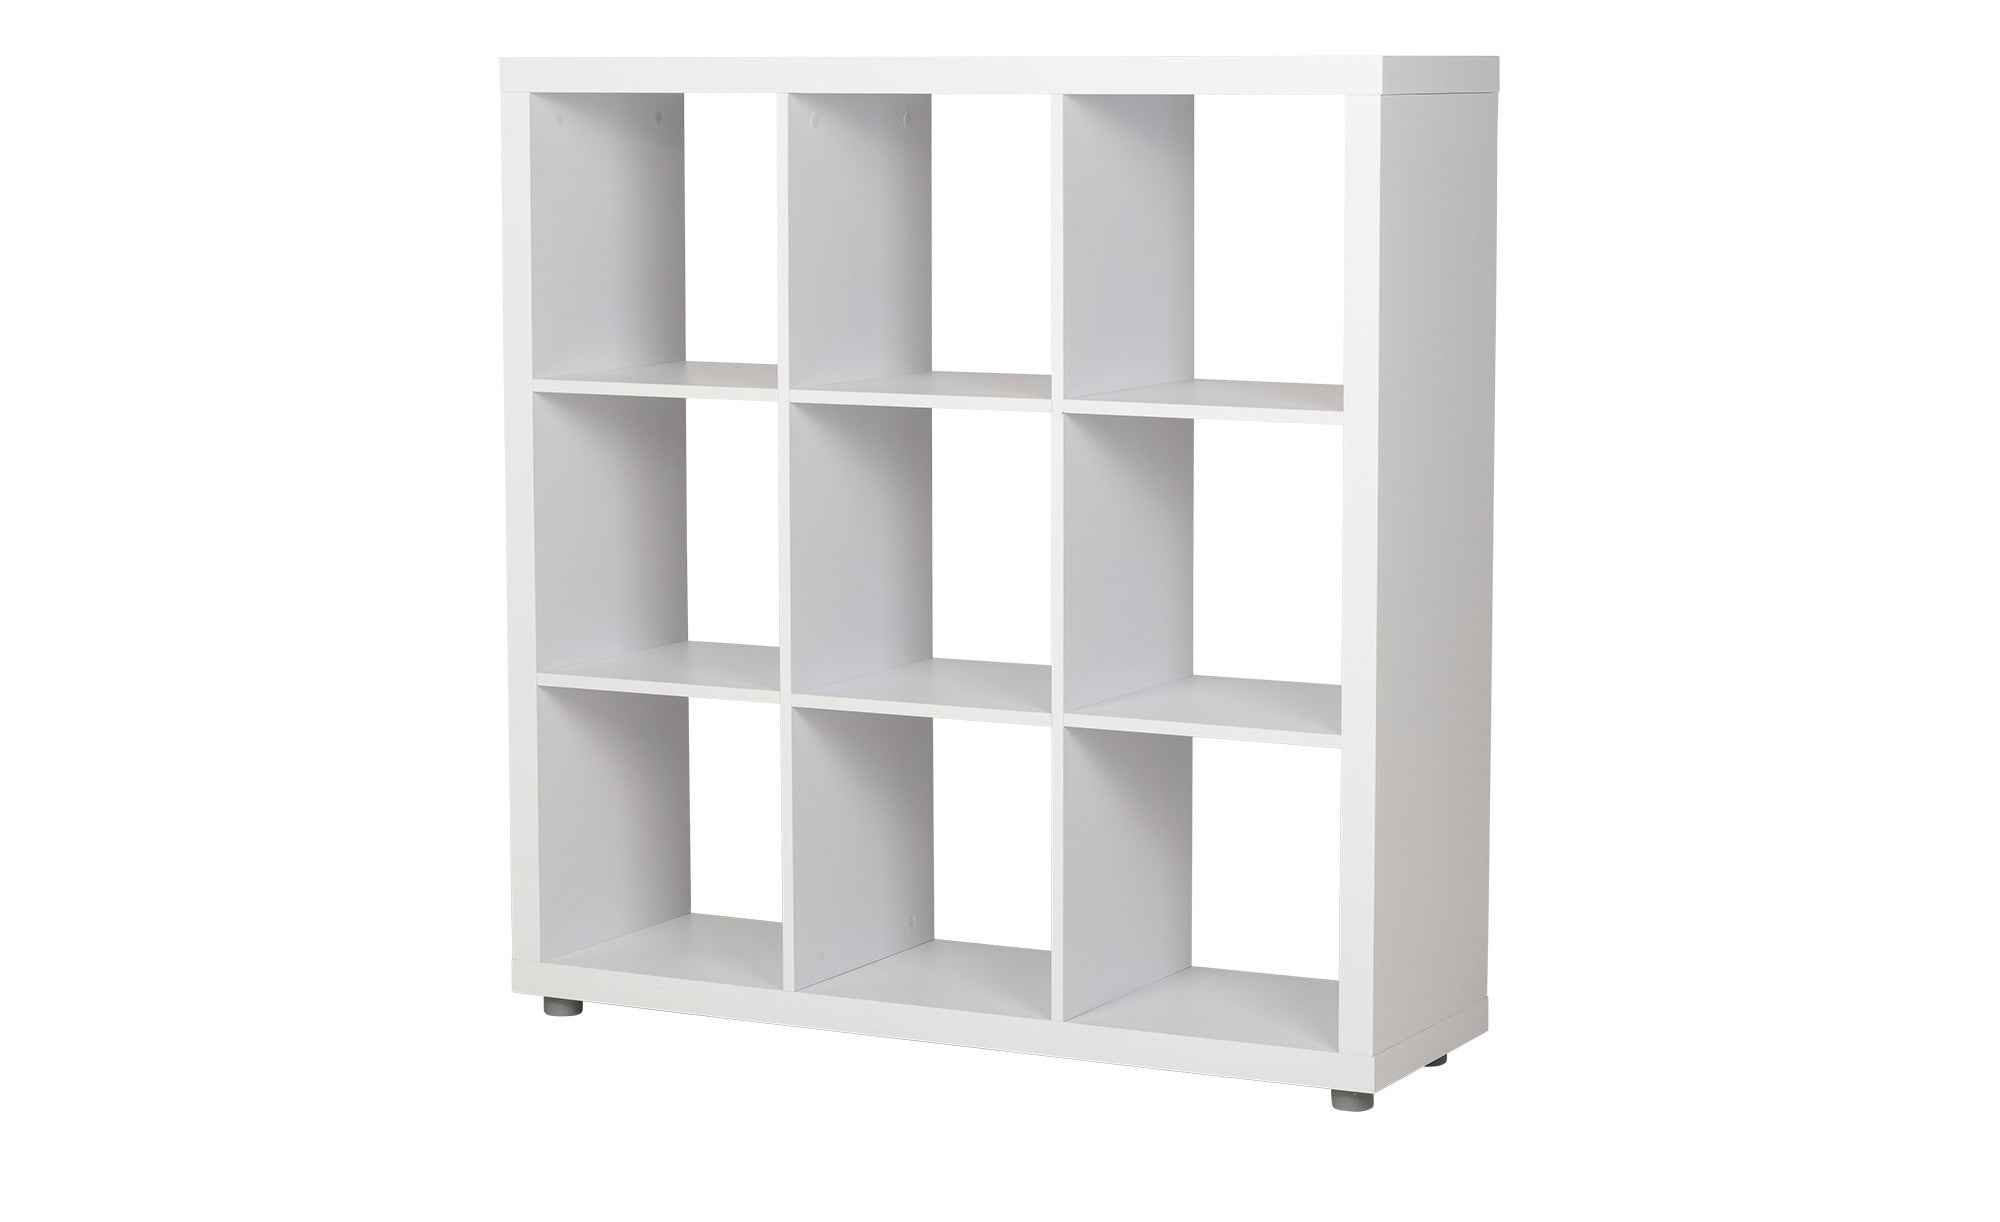 Caro 3x3 cube bookcase bookshelf designs by phoenix for Room design 3x3